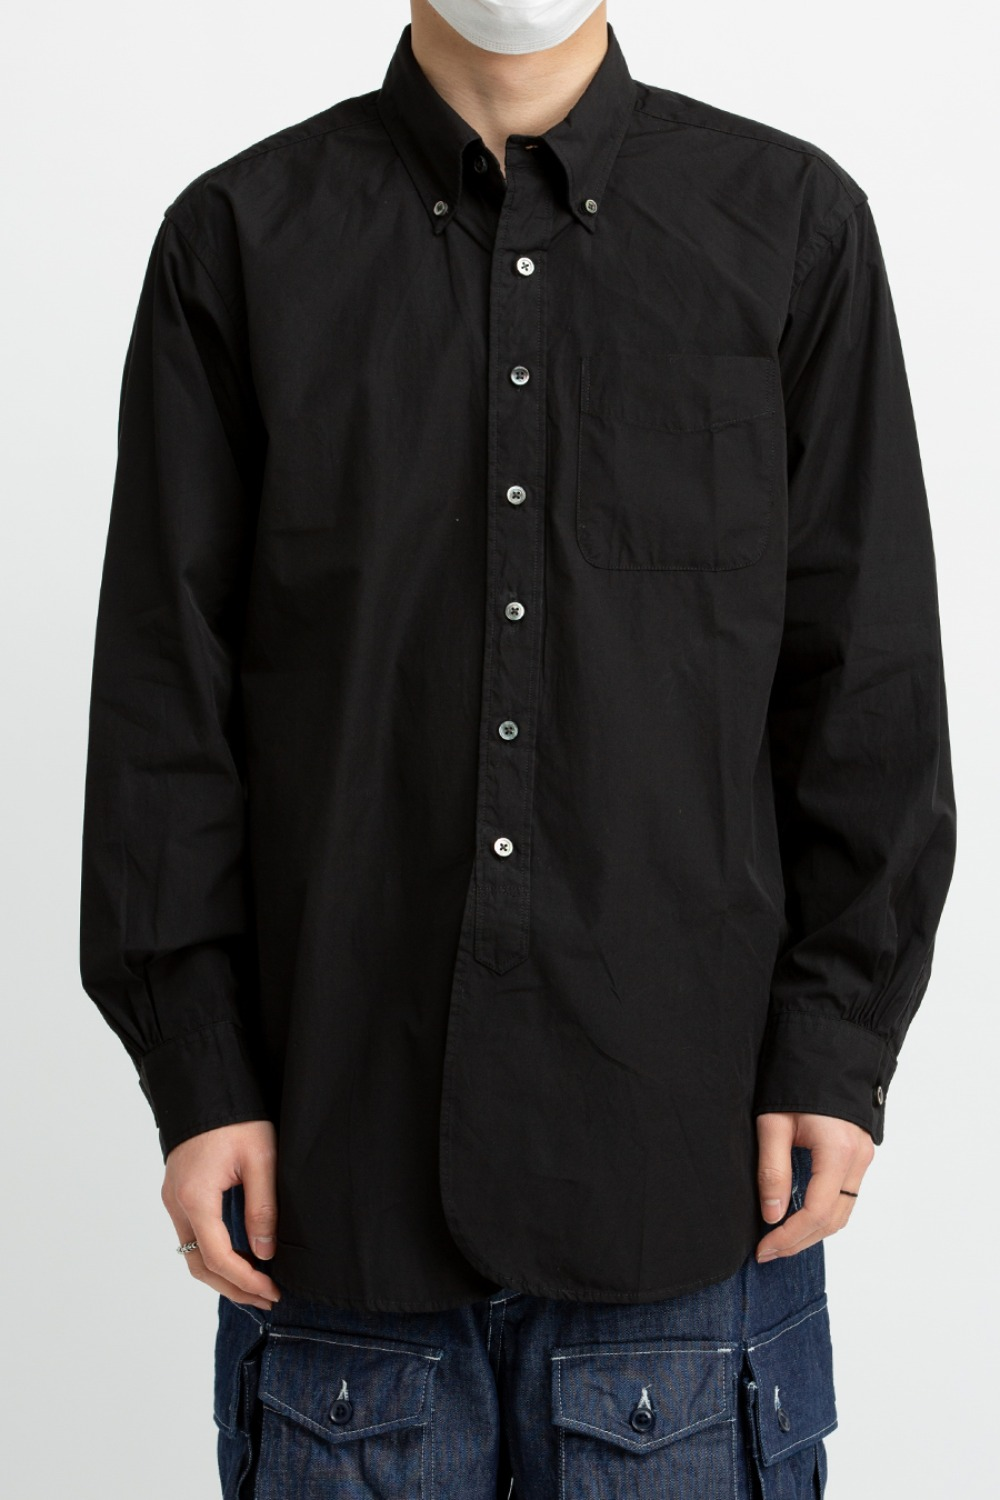 19 CENTURY BD SHIRT 100'S 2PLY BROADCLOTH BLACK